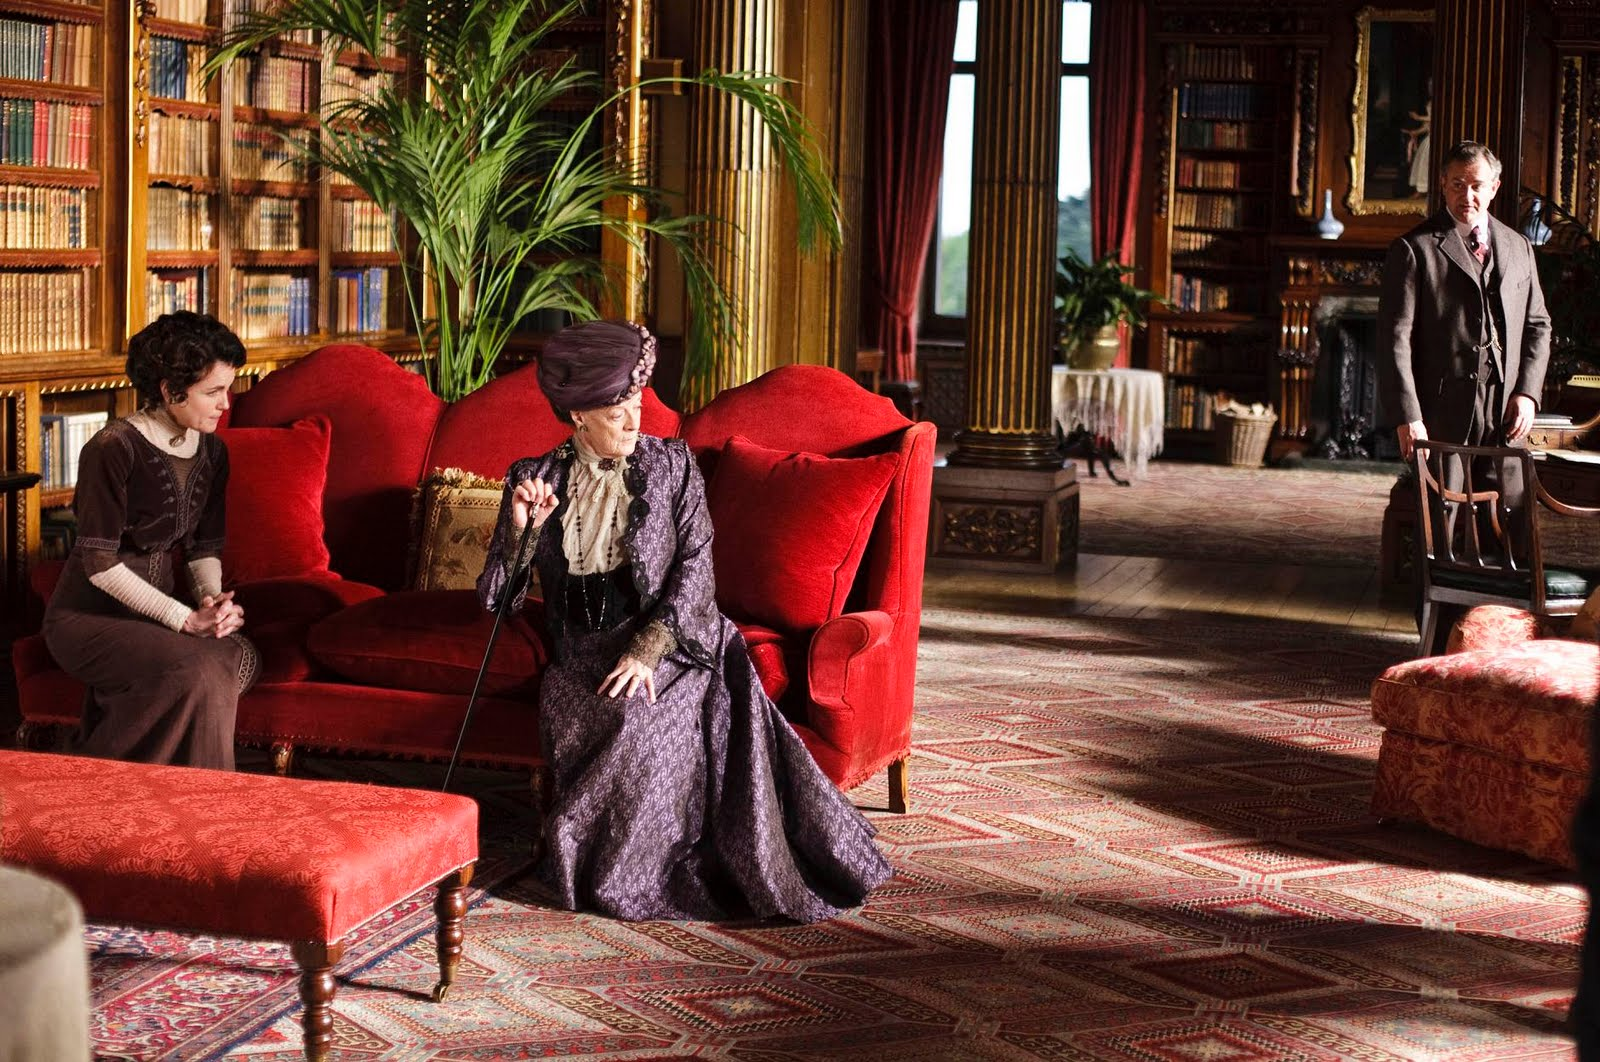 Enchanted Serenity of Period Films Downton Abbey